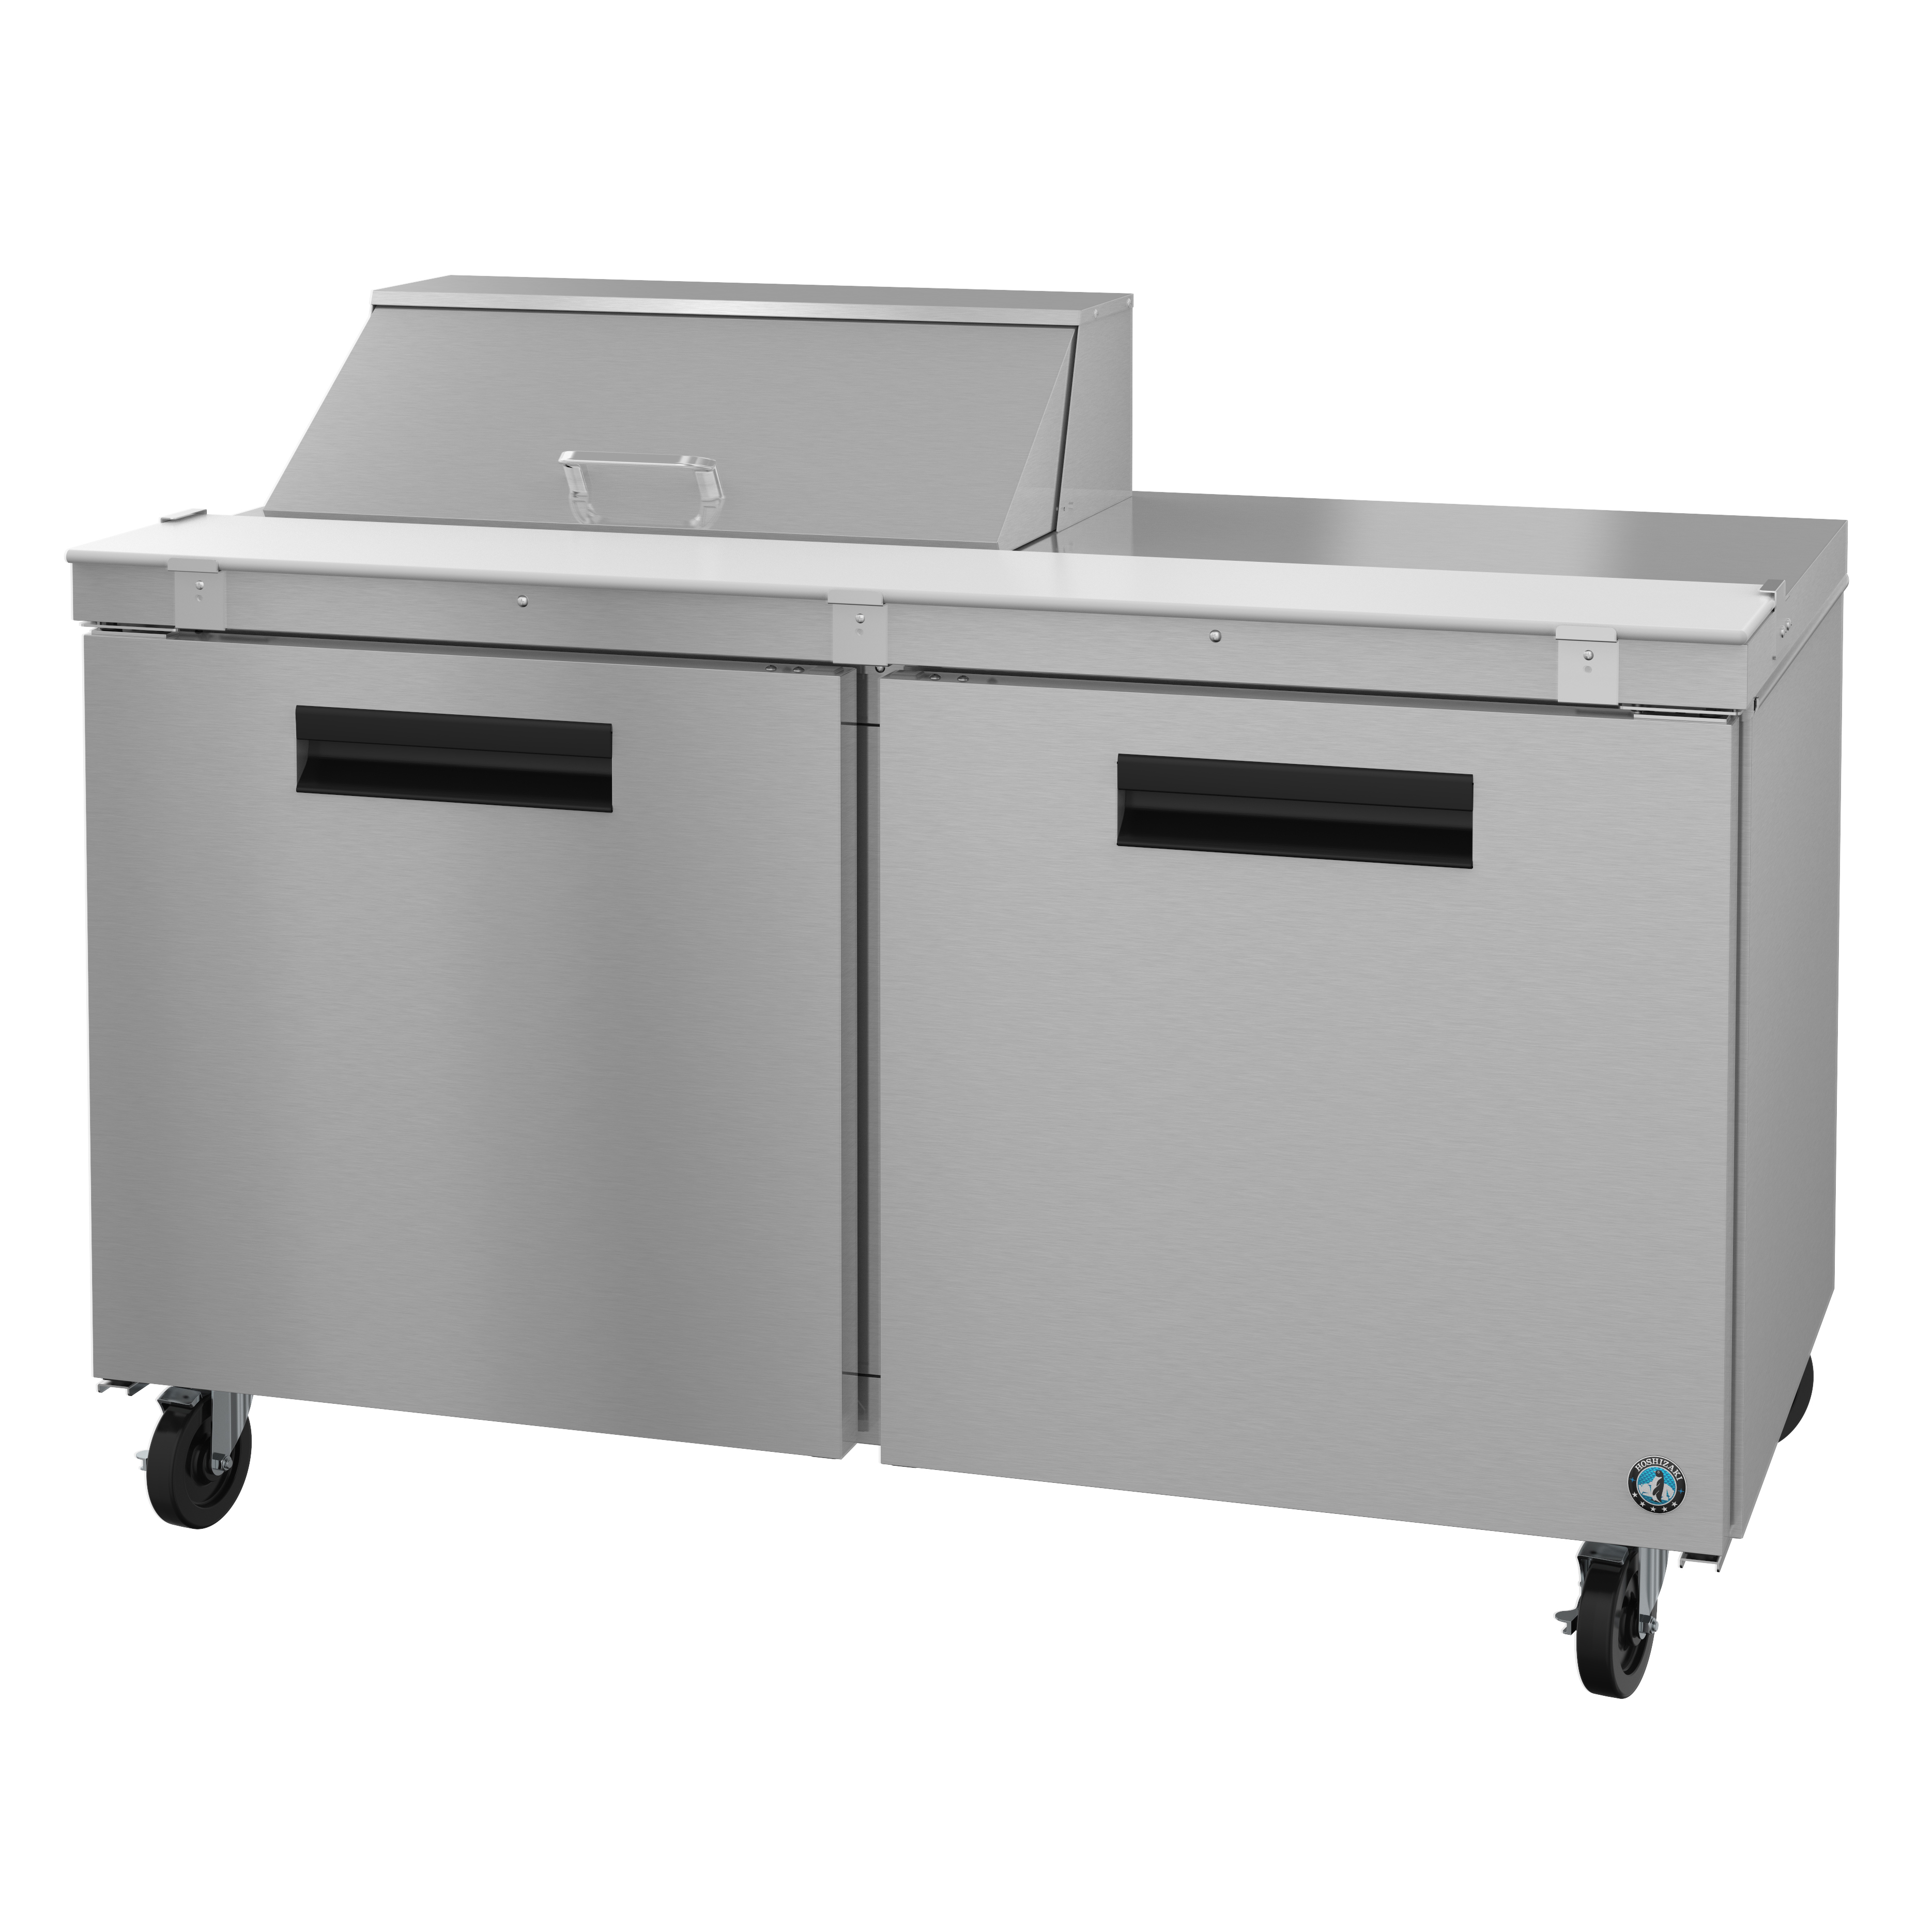 Hoshizaki SR60A-8 refrigerated counter, sandwich / salad unit